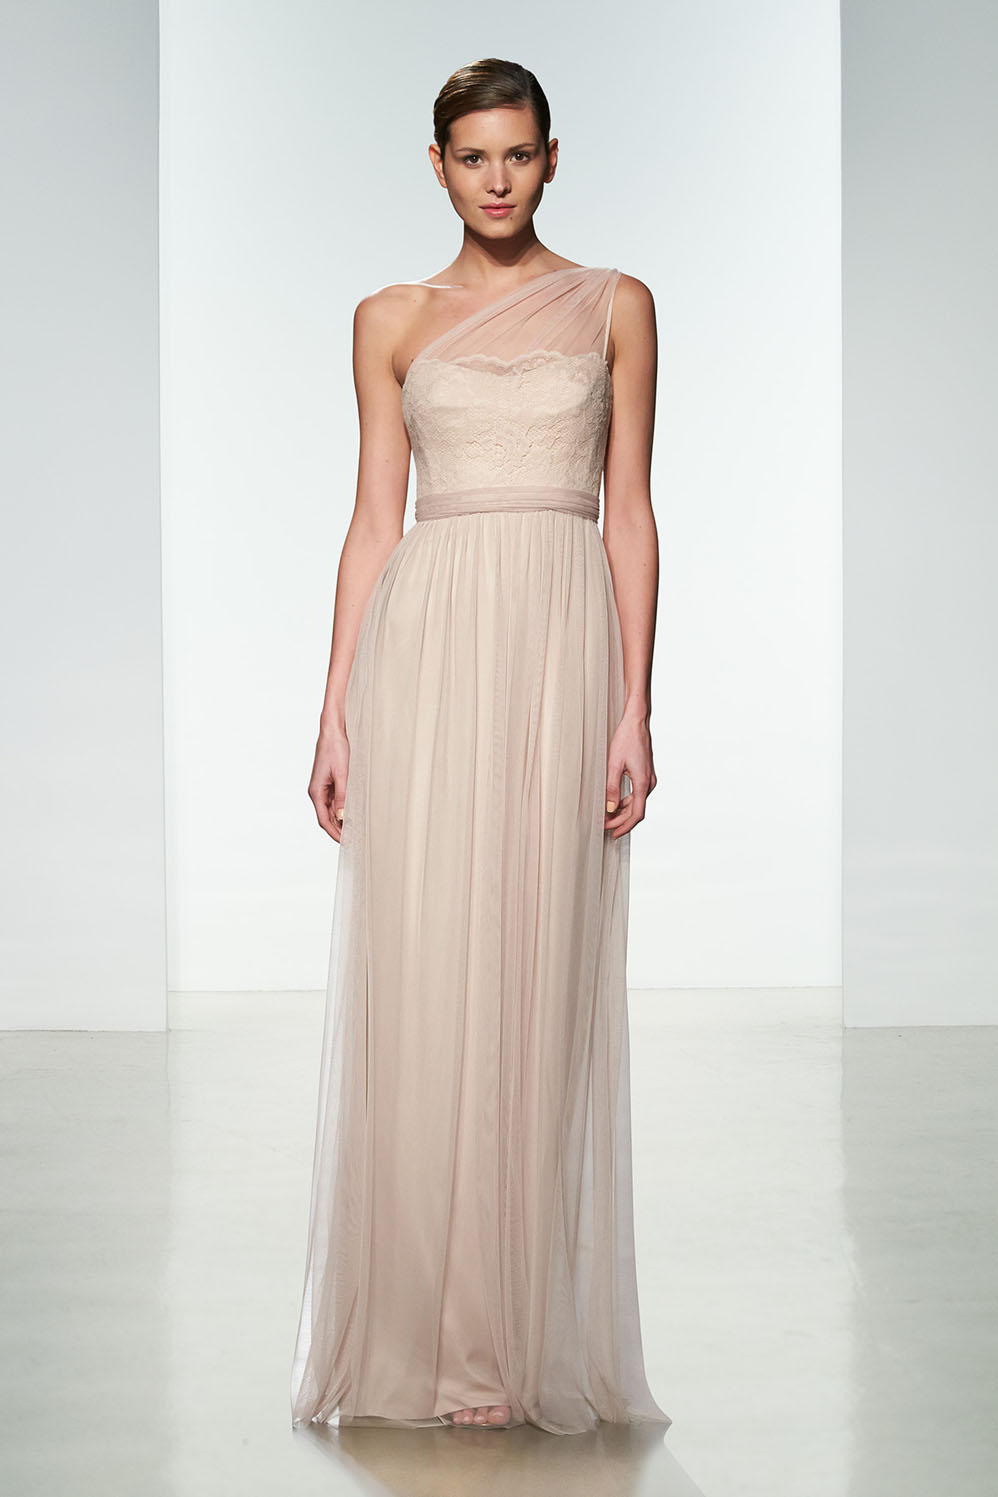 One Shoulder Lace Bodice Blush Tulle Long Bridesmaid Dress with Ribbon